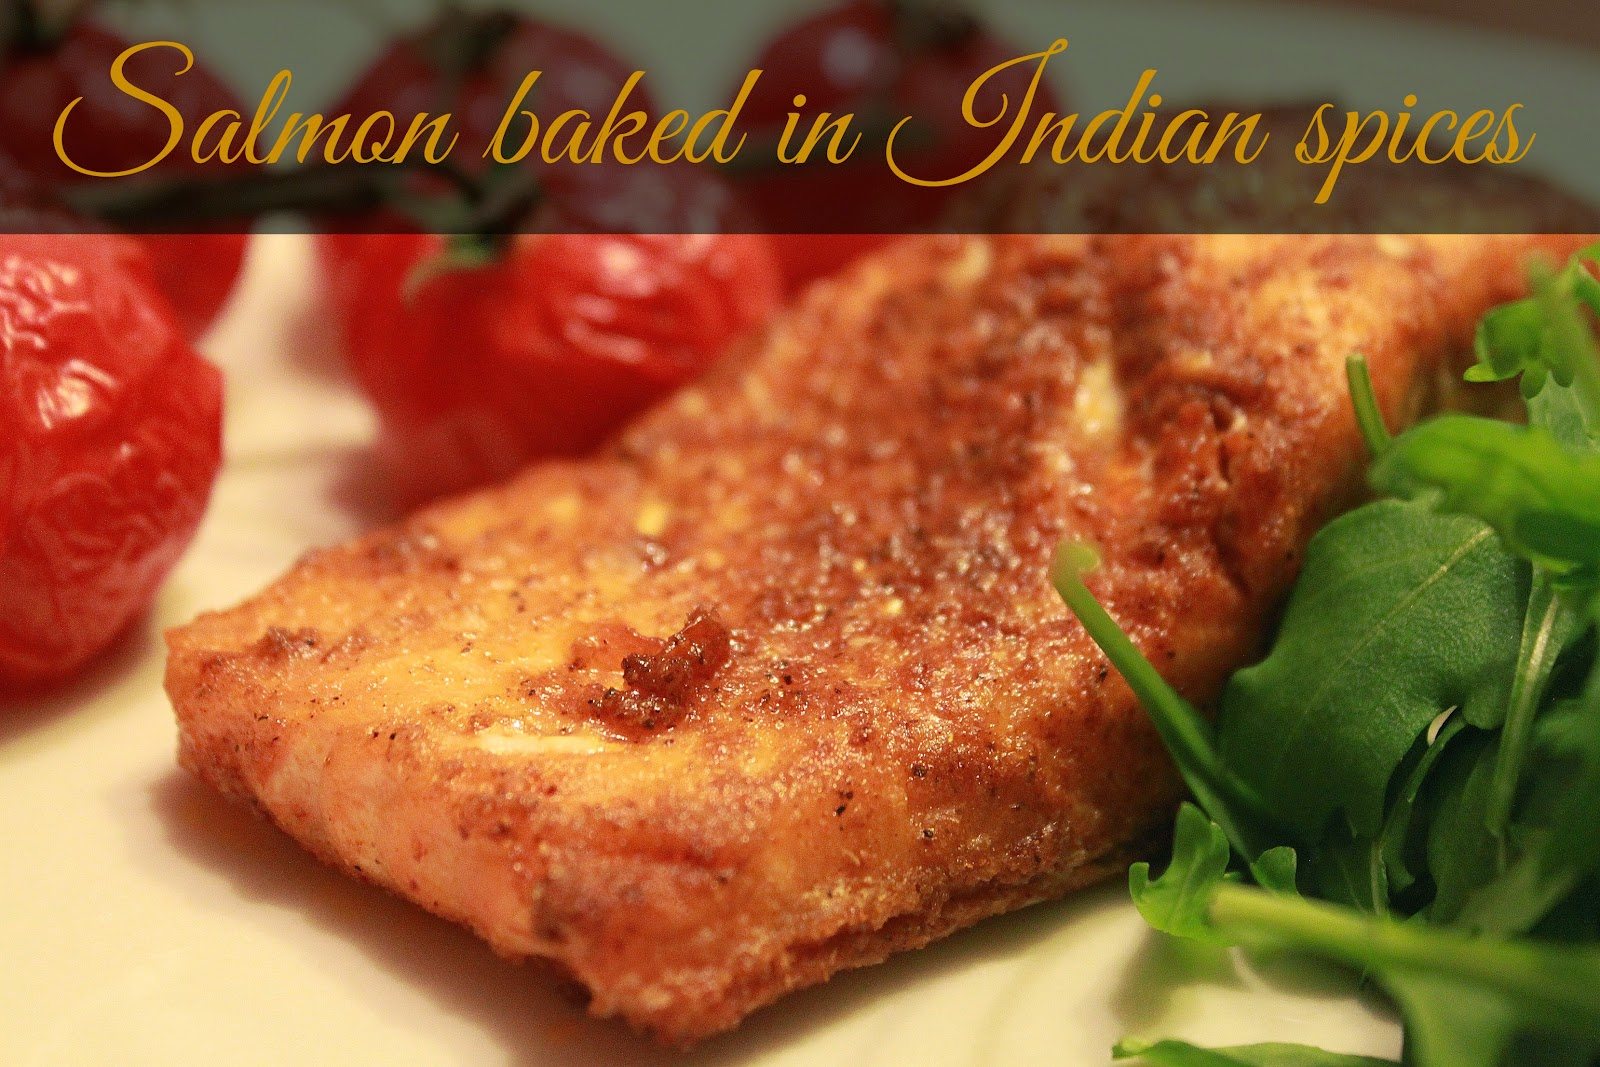 Salmon baked in Indian Spices | Kukskitchen